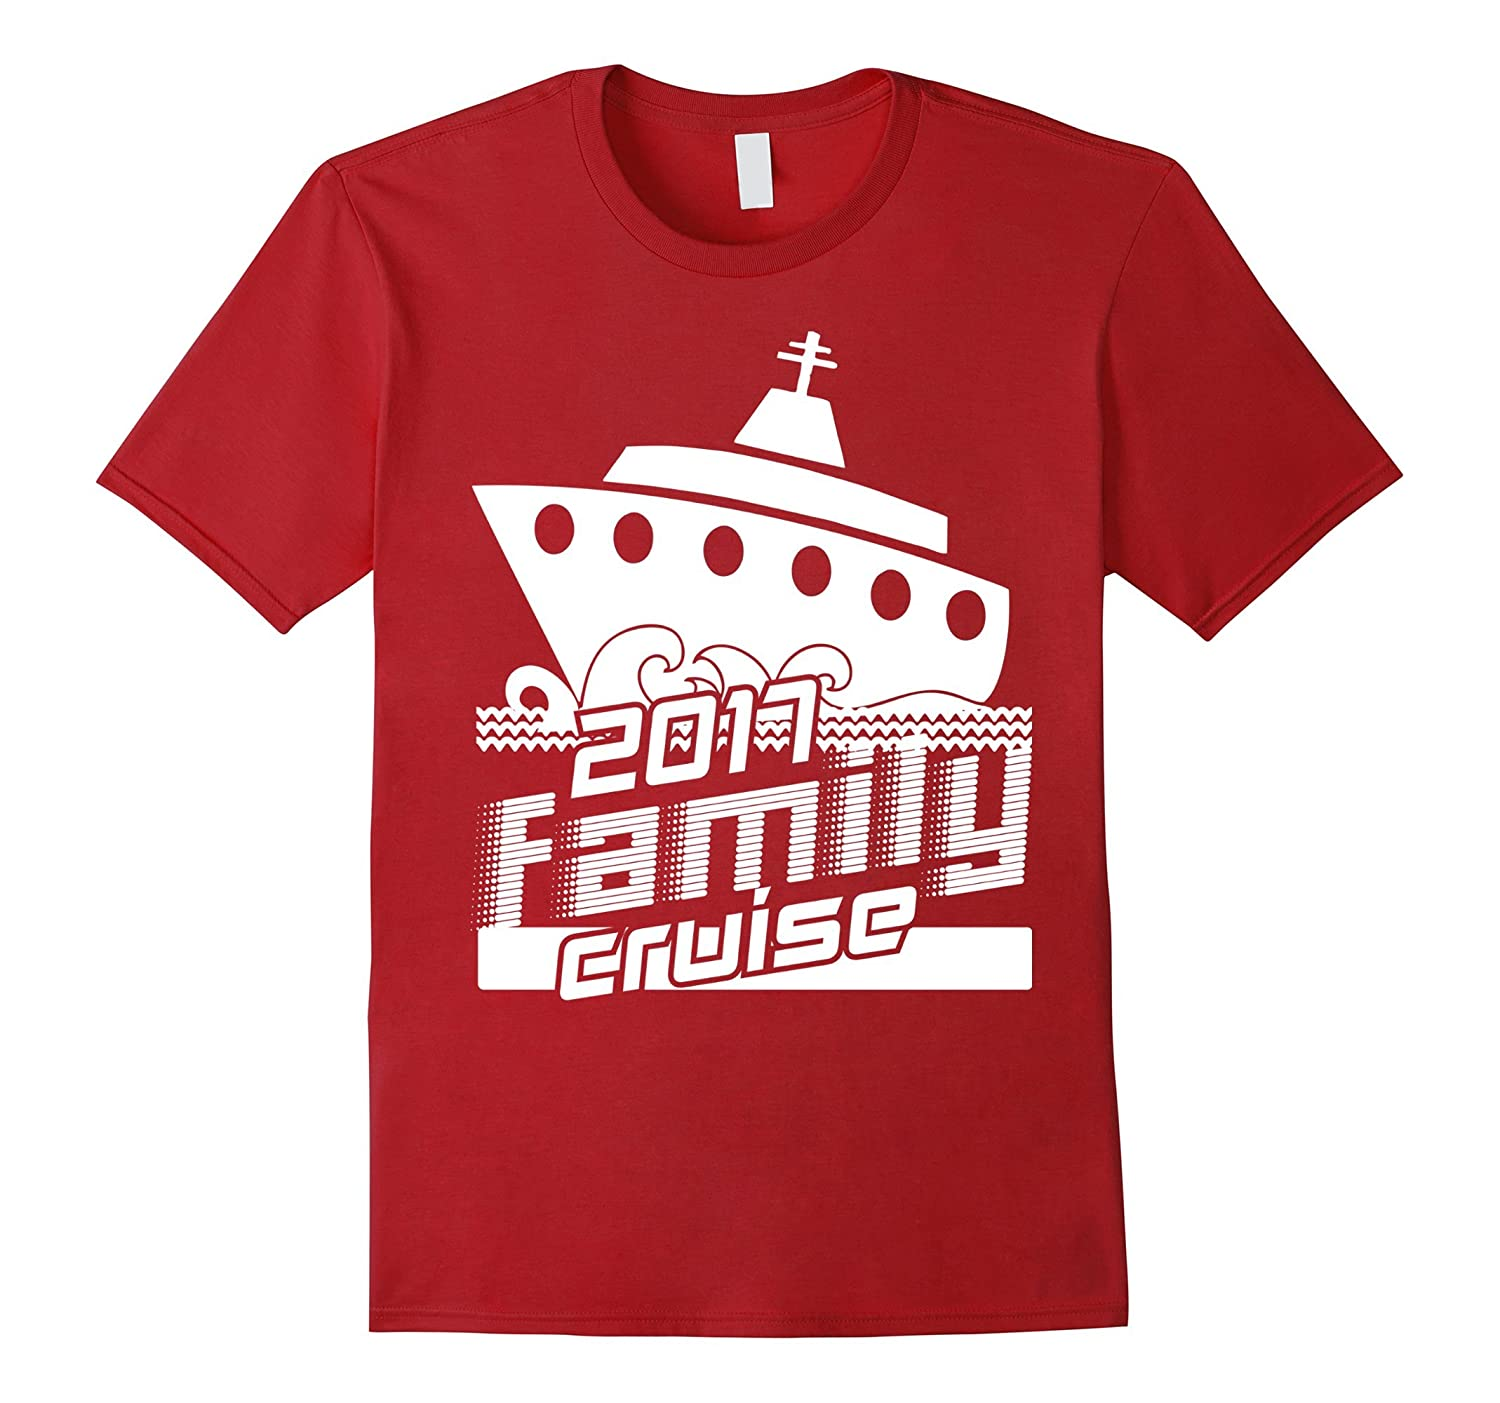 f4d849e803acd2 2017 Family Cruise Shirts Group Vacation Summer T Shirt – Ticalolo.com